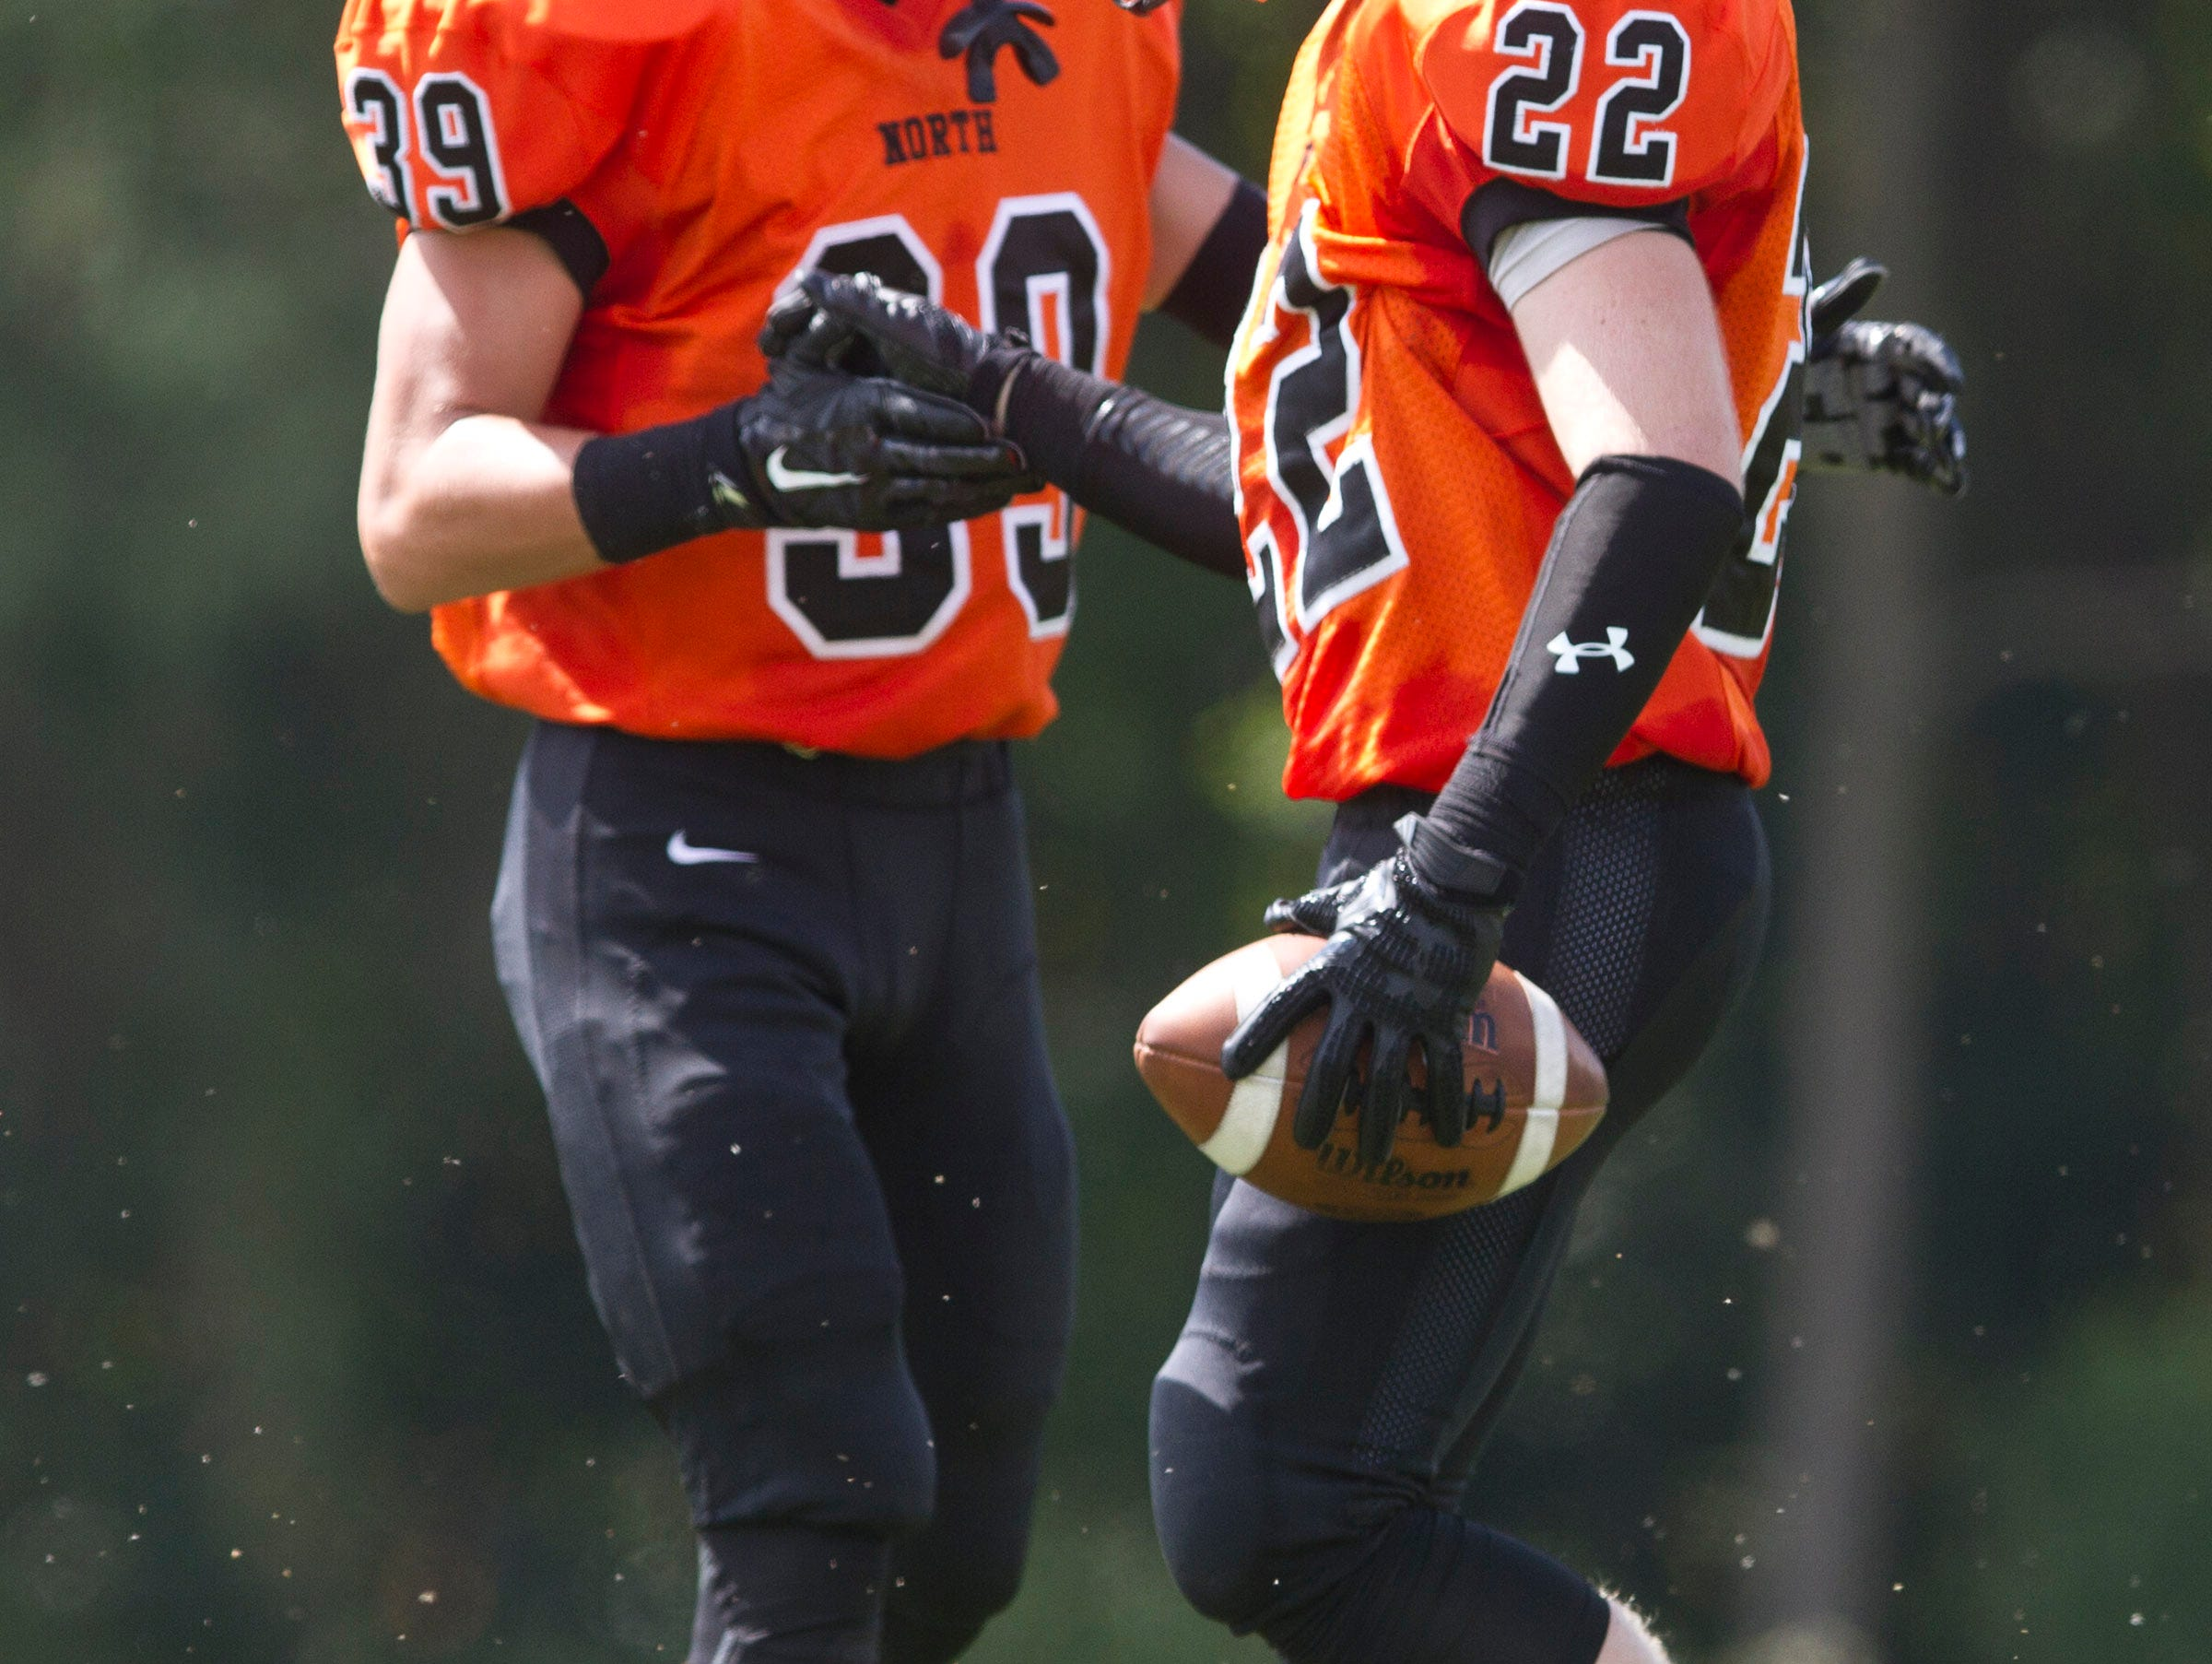 Middletown North's Marc Cerbo (39) celebrates a touchdown by Connor Welsh (22). Middletown North vs Marlboro football. Marlboro, NJ Saturday, September 19, 2015 @dhoodhood